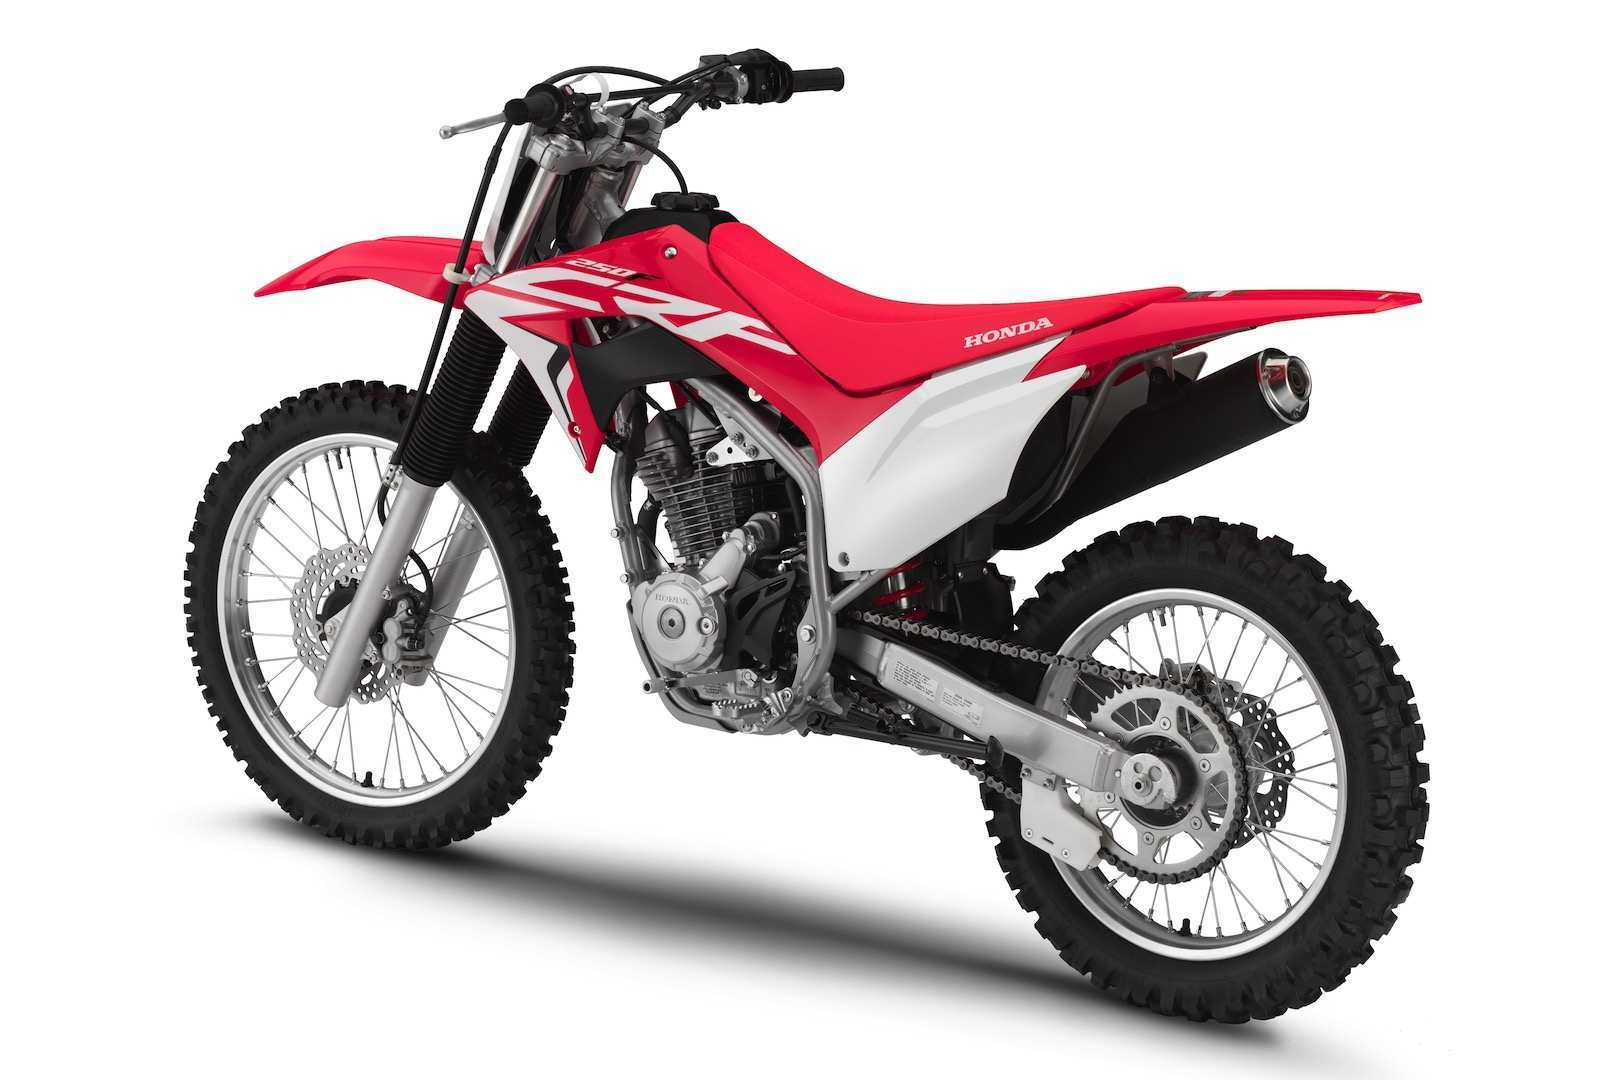 89 New 2019 Honda 230F Pictures for 2019 Honda 230F